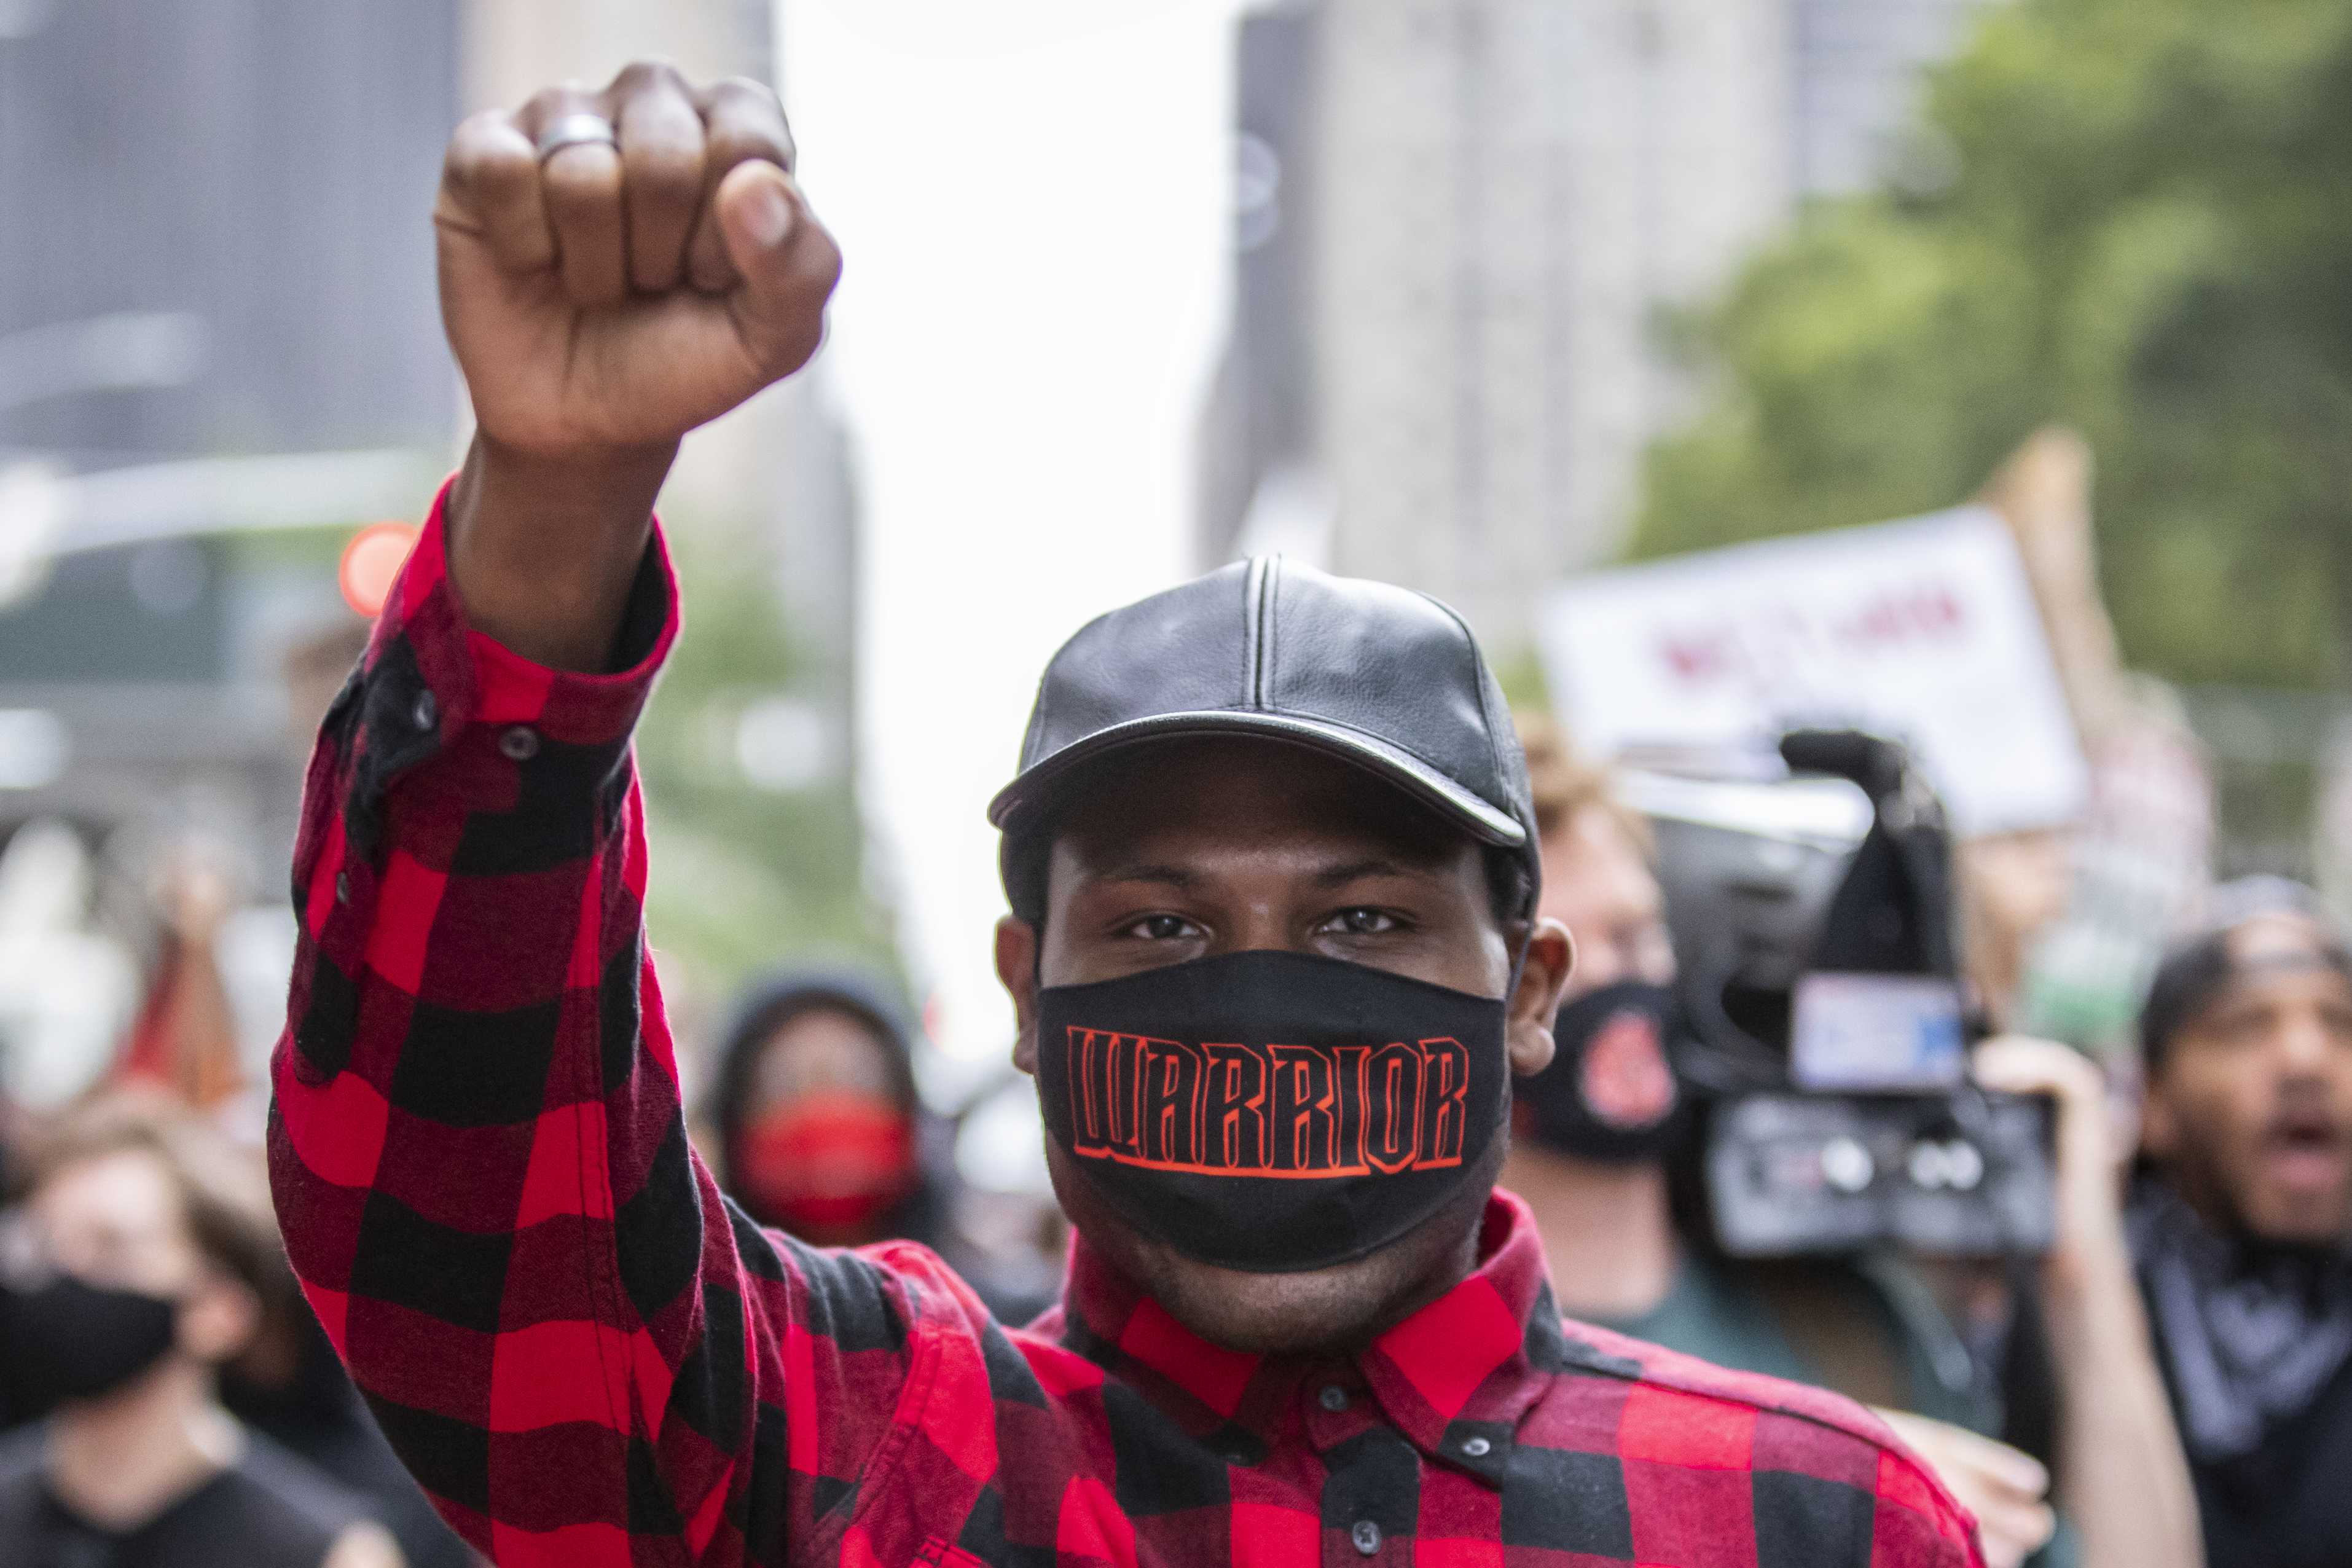 , The Activist Who Streamed a Bizarre Standoff With the NYPD Will Keep Fighting, Saubio Making Wealth